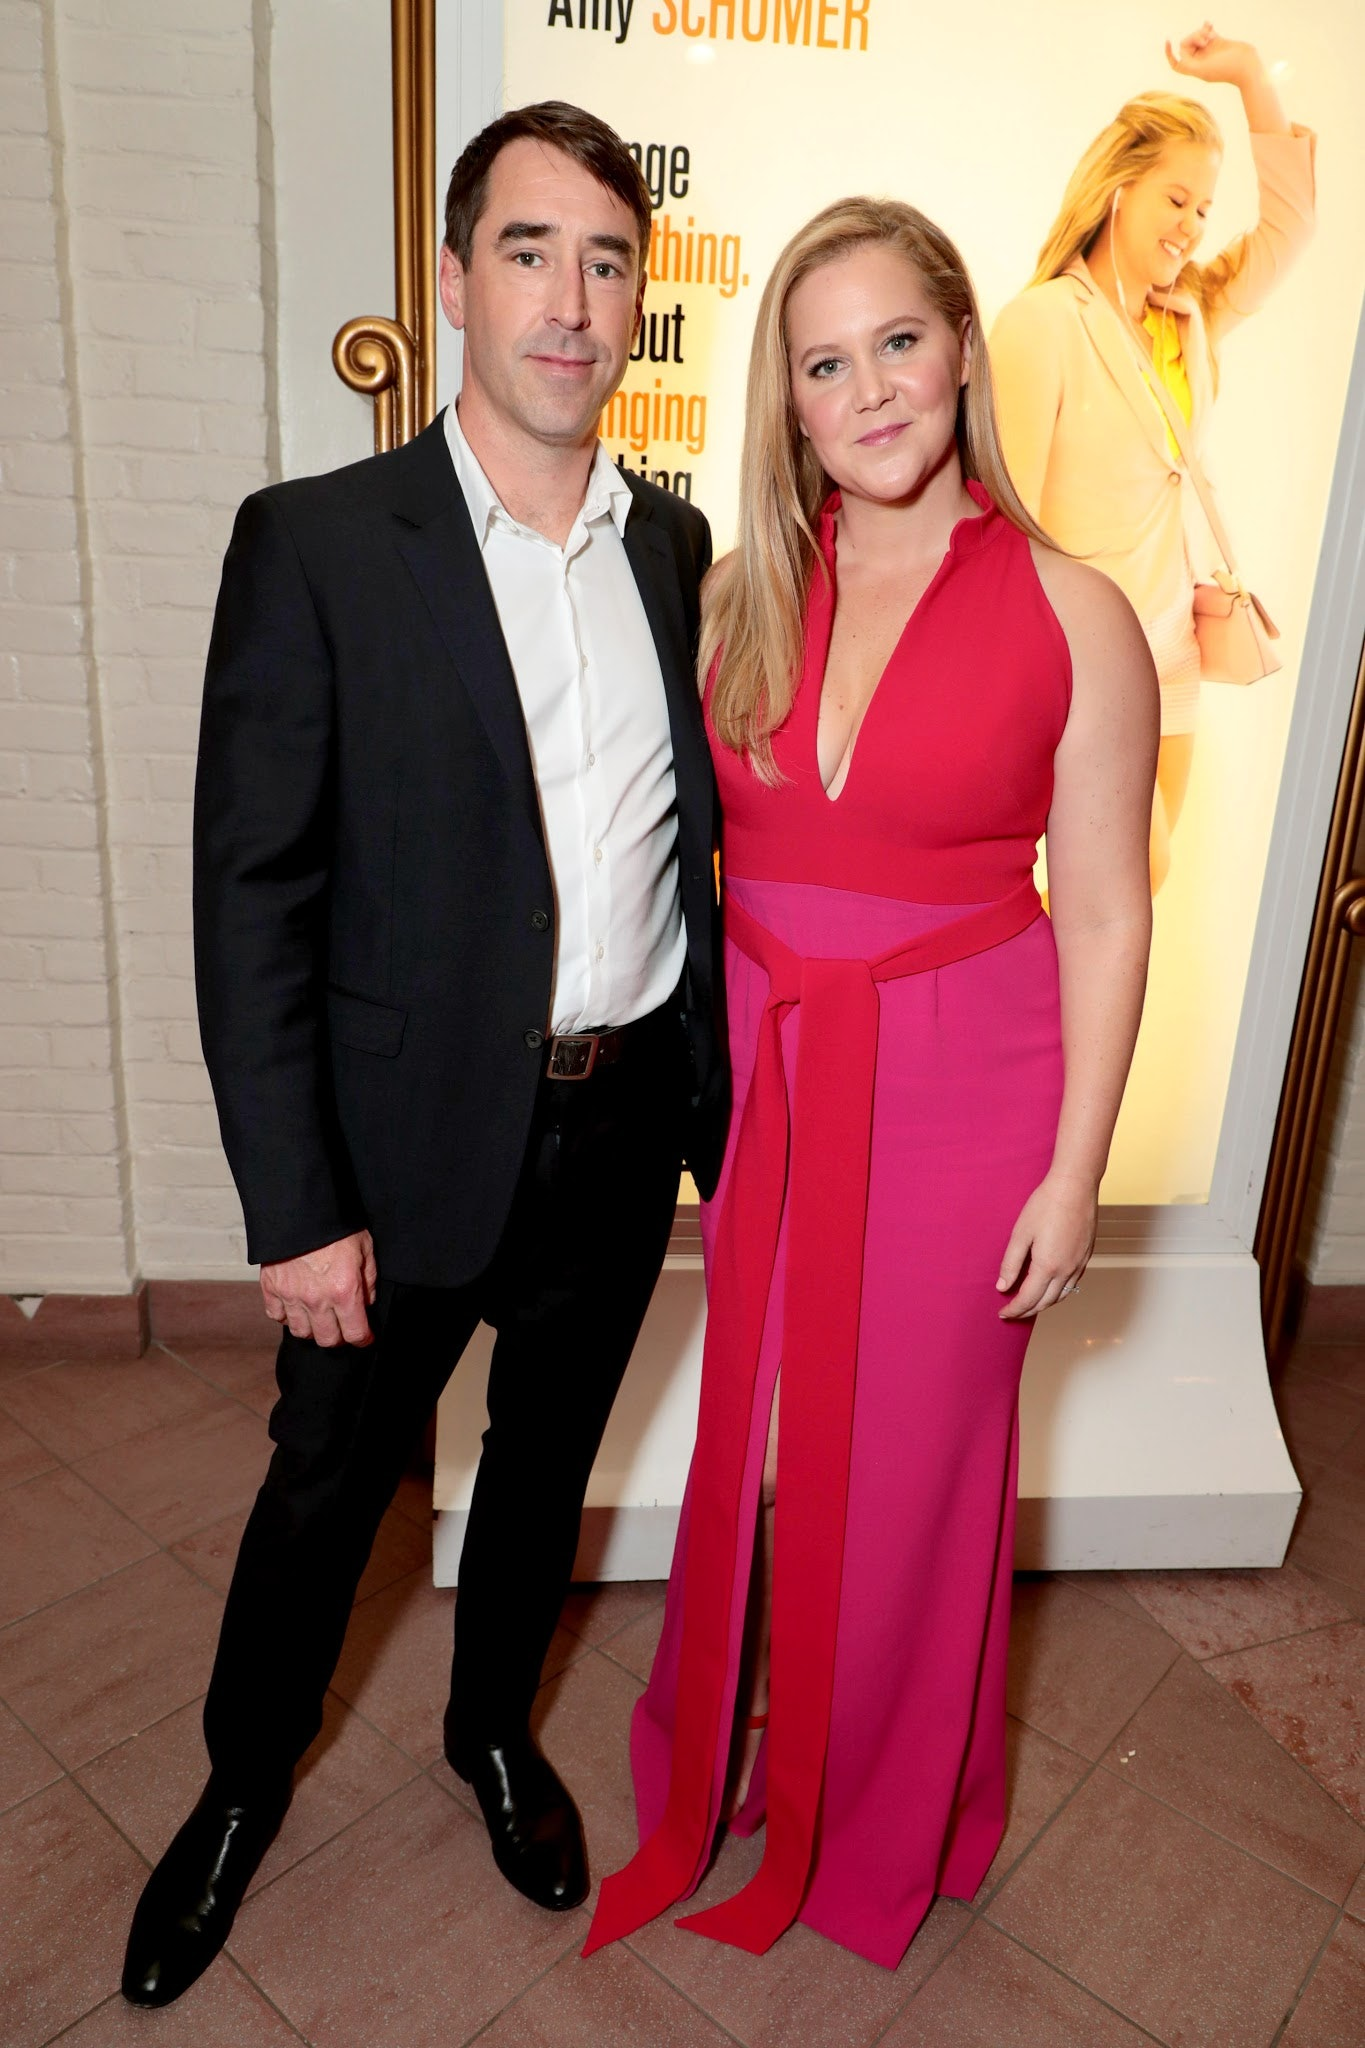 b03796771a Amy Schumer   Chris Fischer s Red Carpet Debut Just Happened   They Looked  So In Love